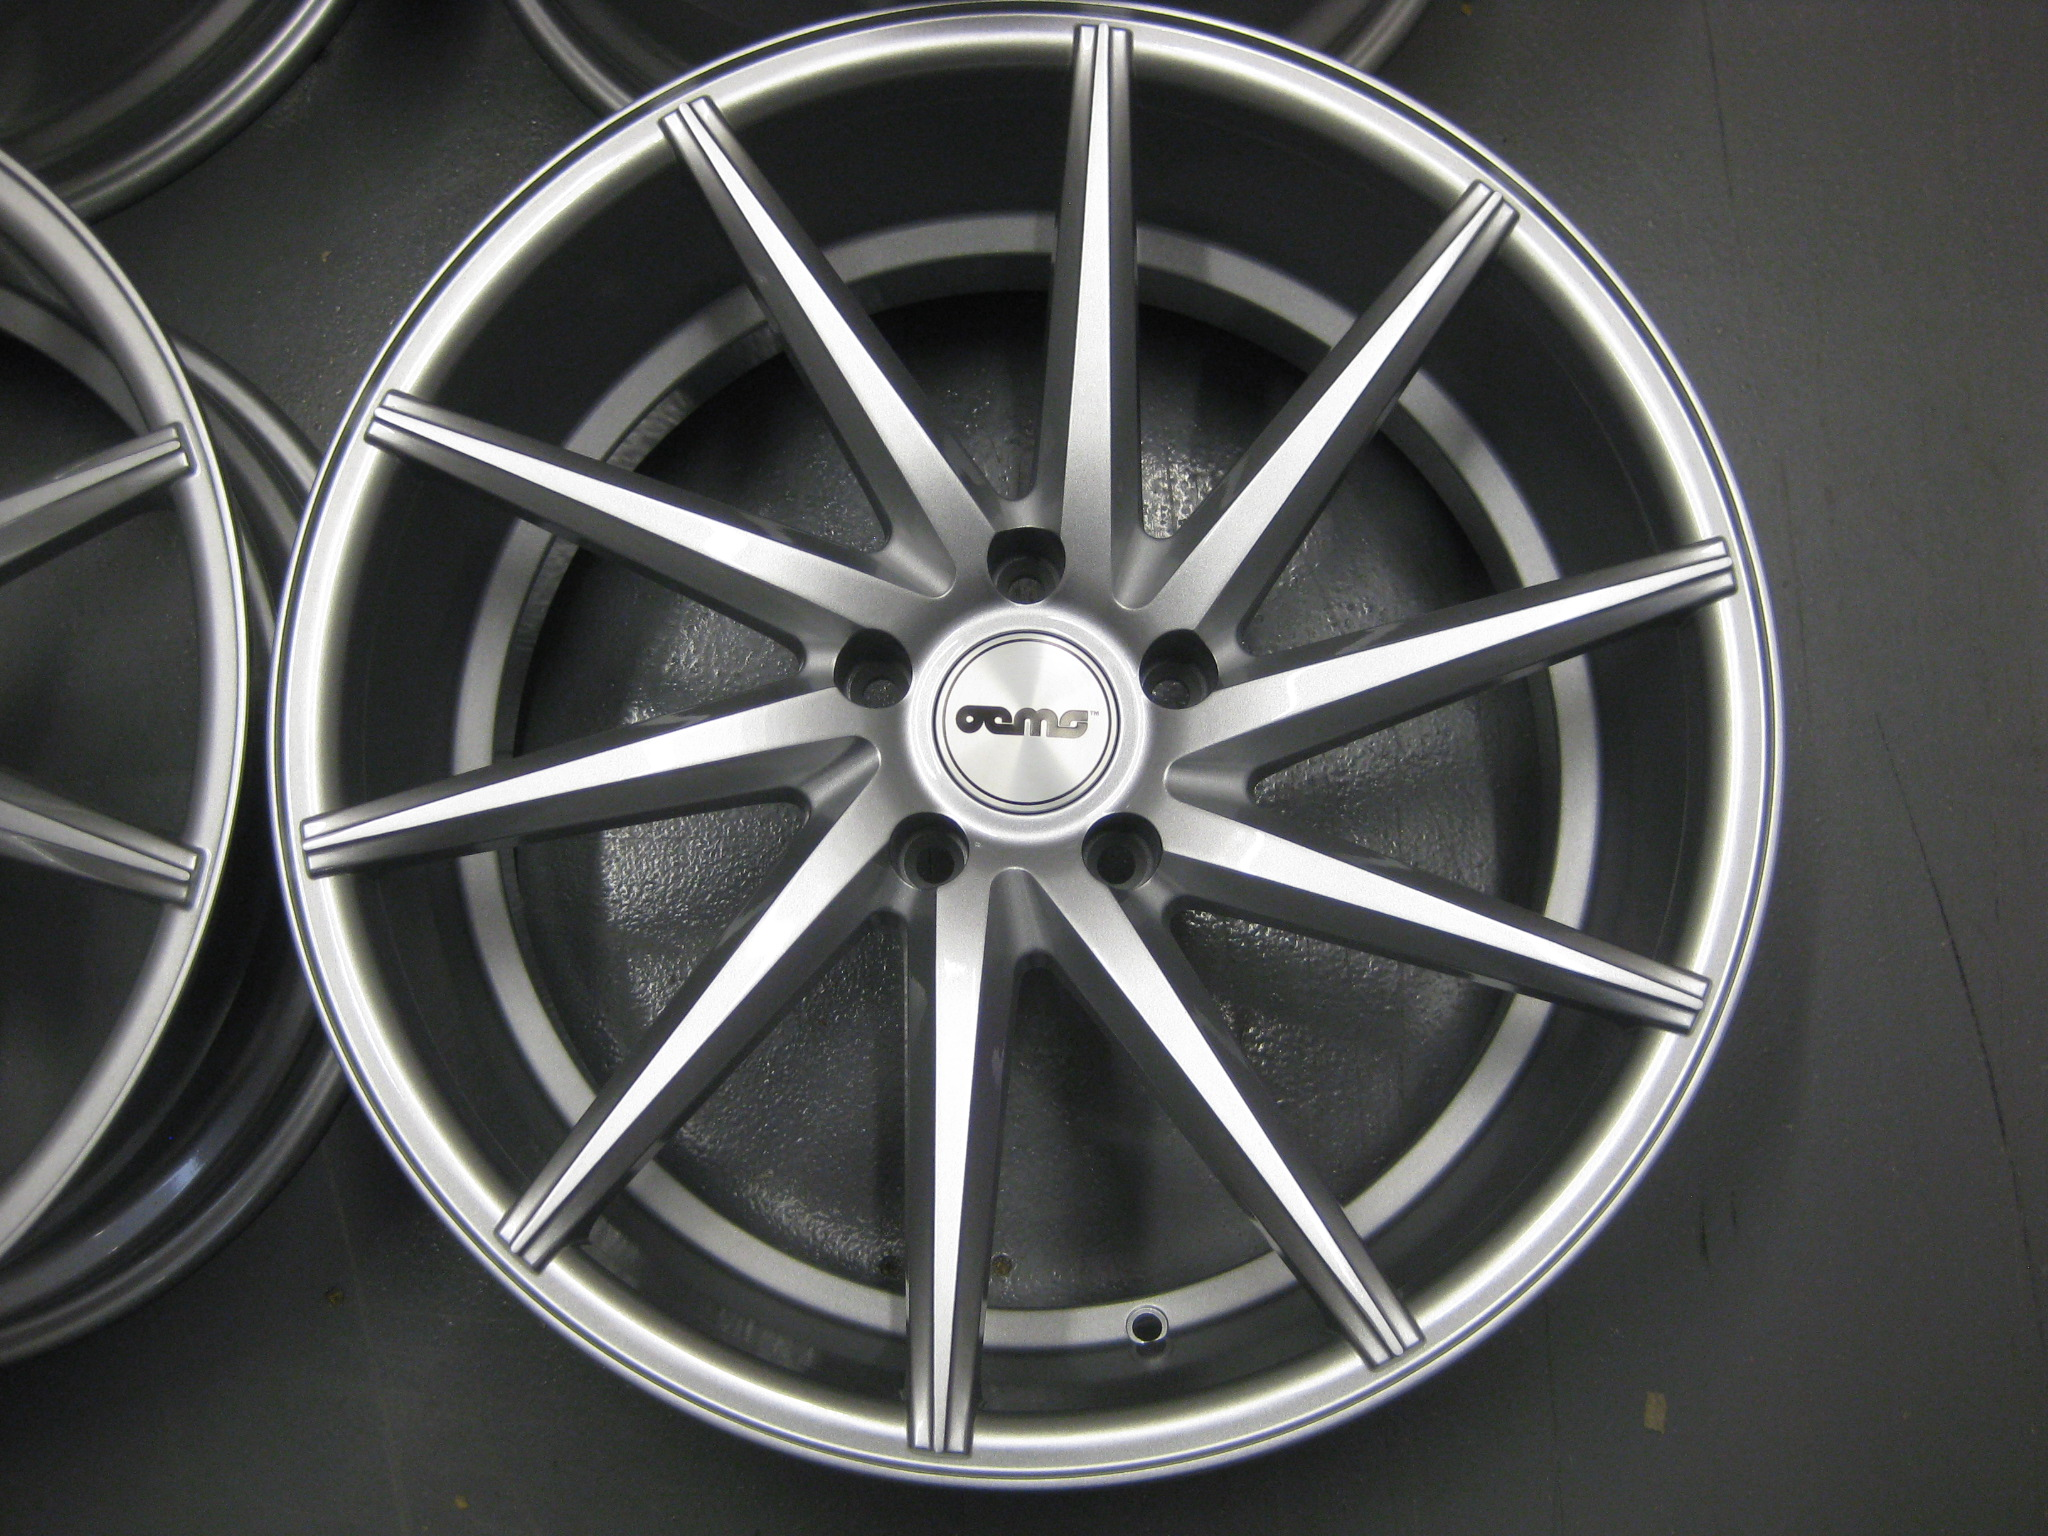 "NEW 20"" OEMS CVT DIRECTIONAL ALLOY WHEELS IN SILVER, WIDER 10.5"" REAR"